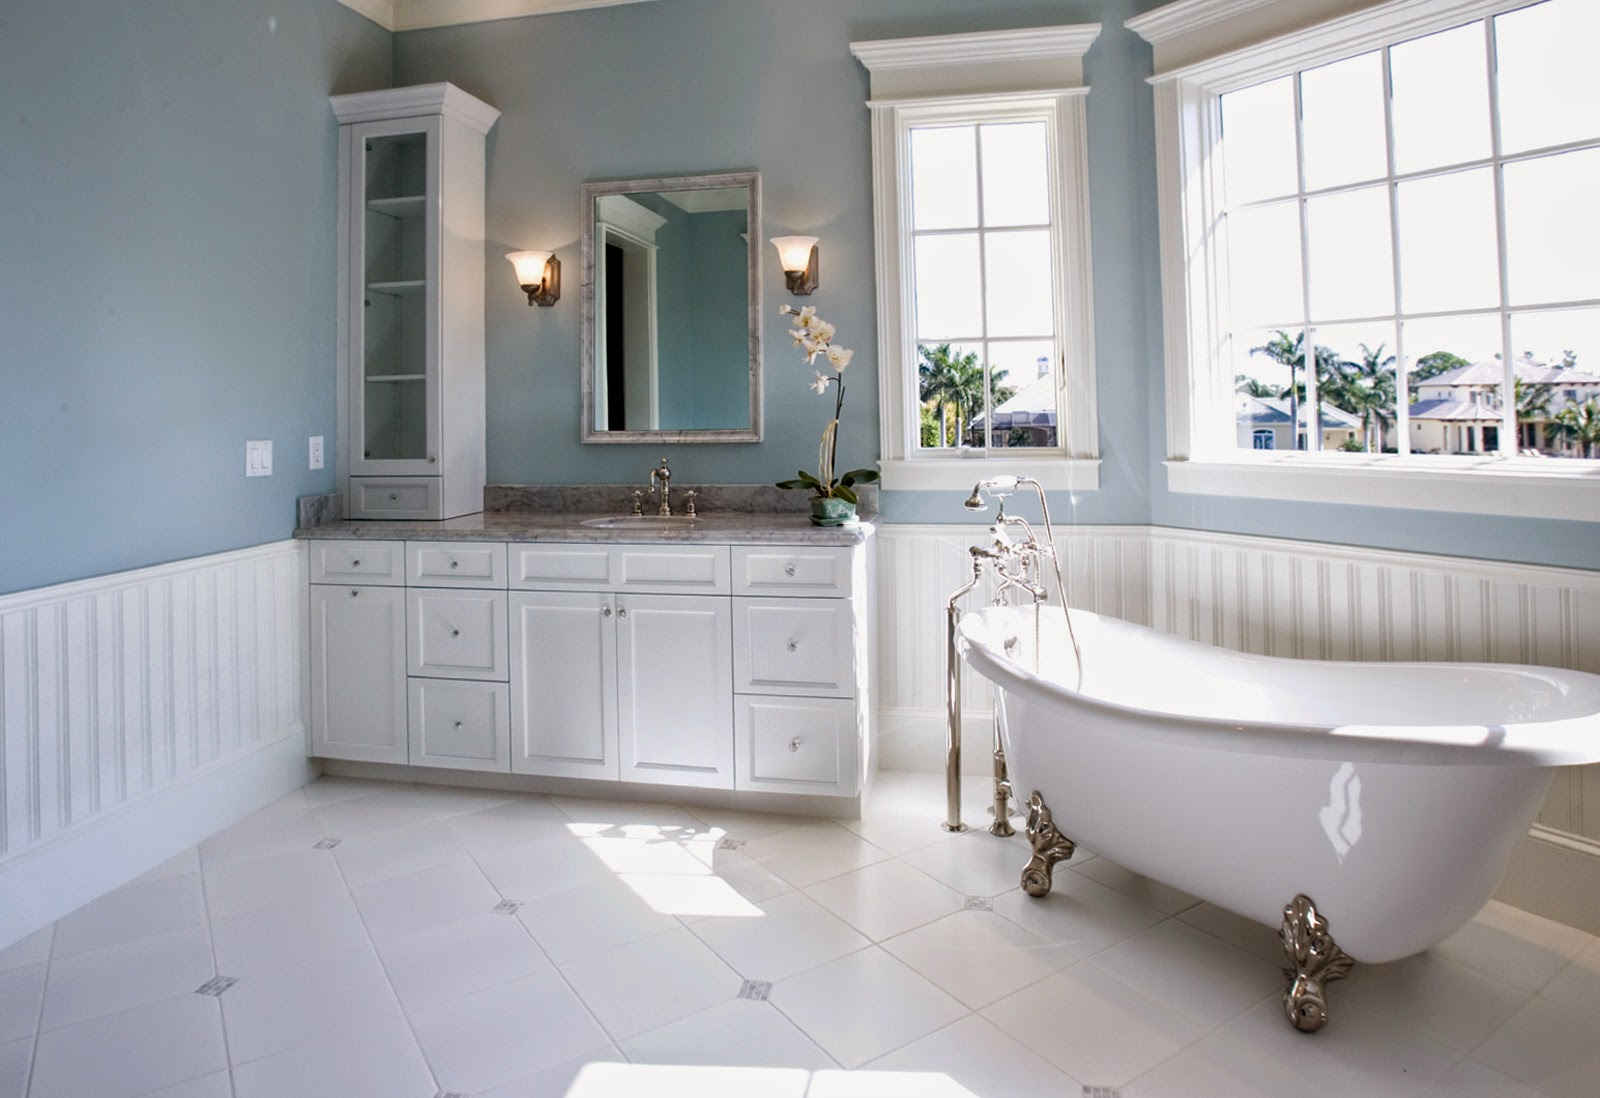 Top 10 beautiful bathroom design 2014 home interior blog for Beautiful toilet designs